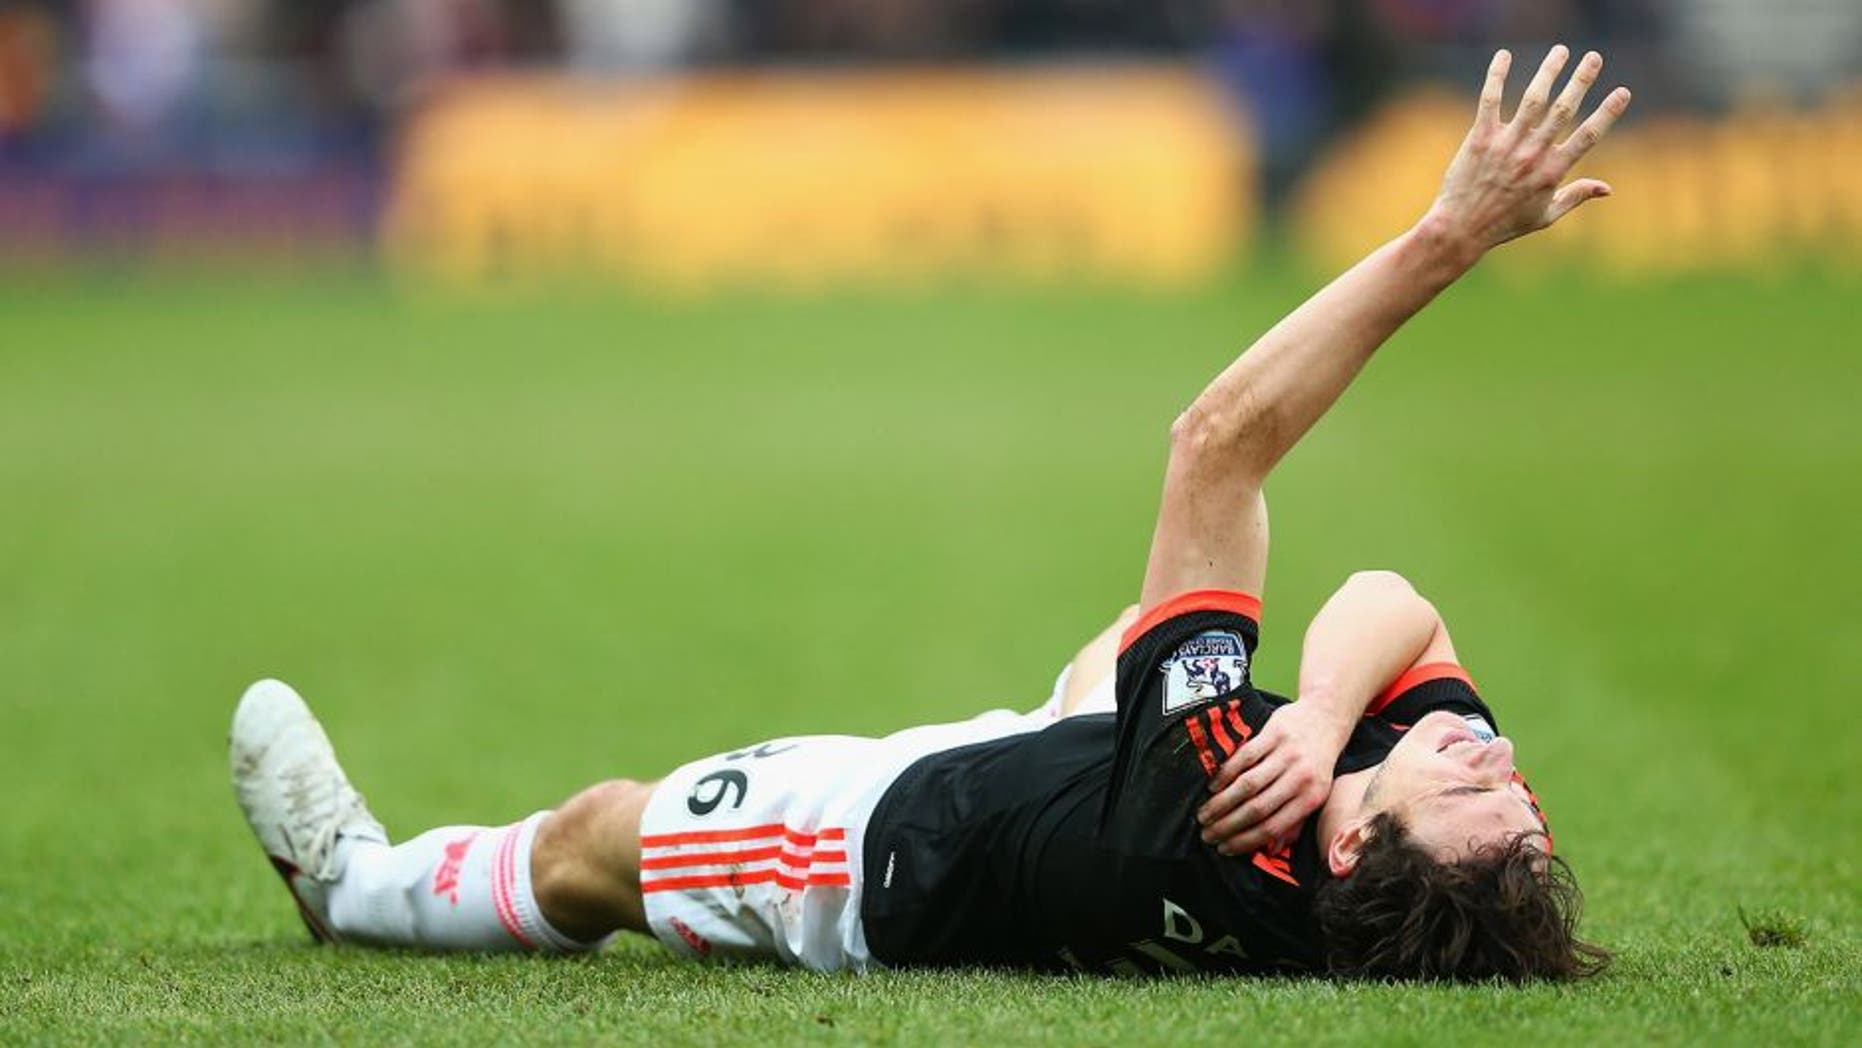 SUNDERLAND, ENGLAND - FEBRUARY 13: Matteo Darmian of Manchester United lies injured during the Barclays Premier League match between Sunderland and Manchester United at the Stadium of Light on February 13, 2016 in Sunderland, England. (Photo by Clive Brunskill/Getty Images)